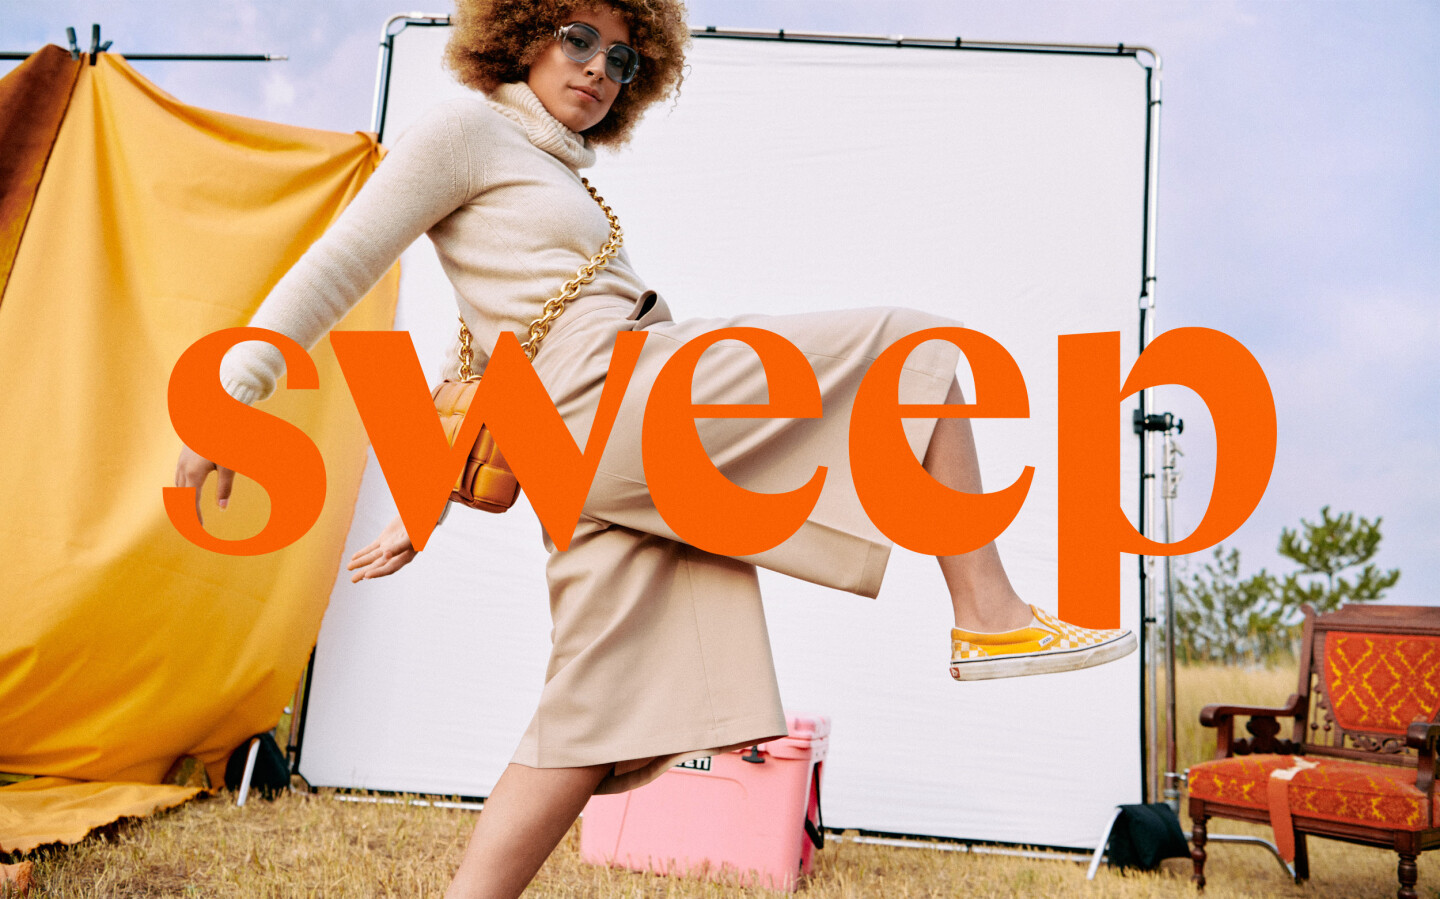 Thumbnail for Meet Sweep's Perfectly Imperfect Sun-Kissed Branding Designed By The Office of Ordinary Things